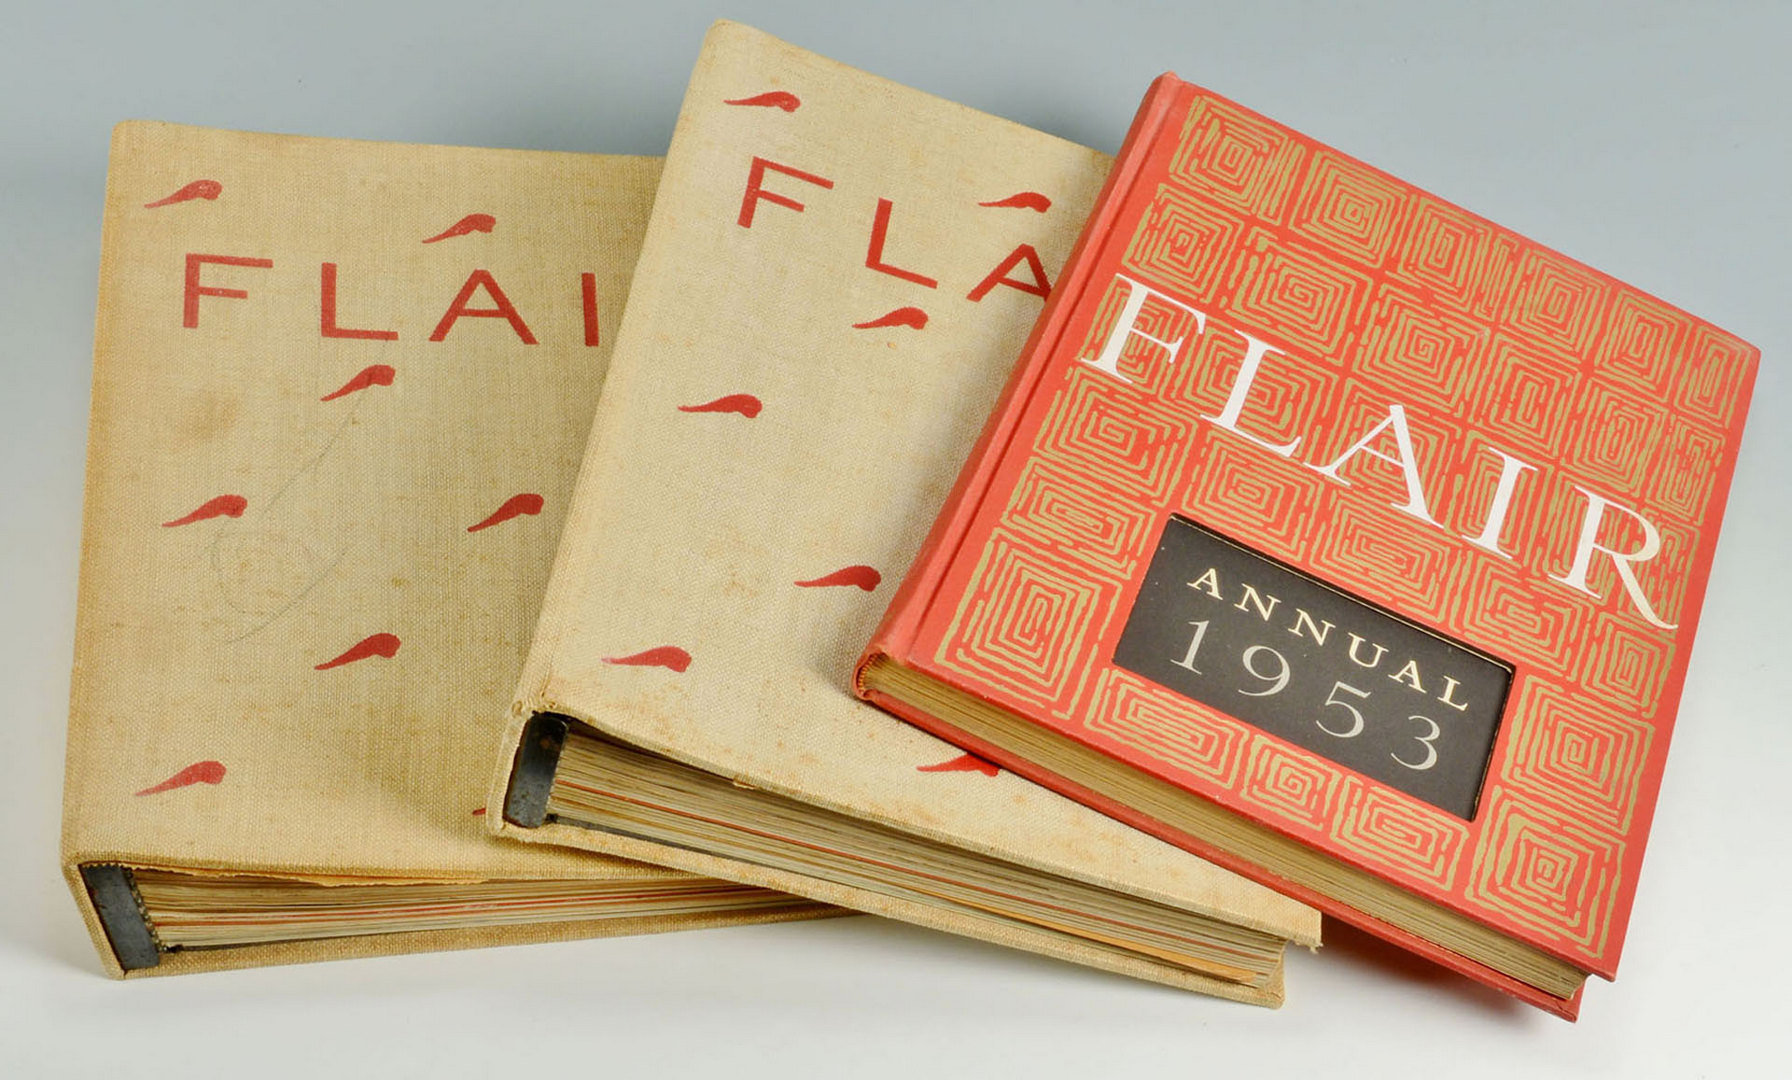 Lot 614: Collection Flair Magazines & 1 Flair Annual, signe